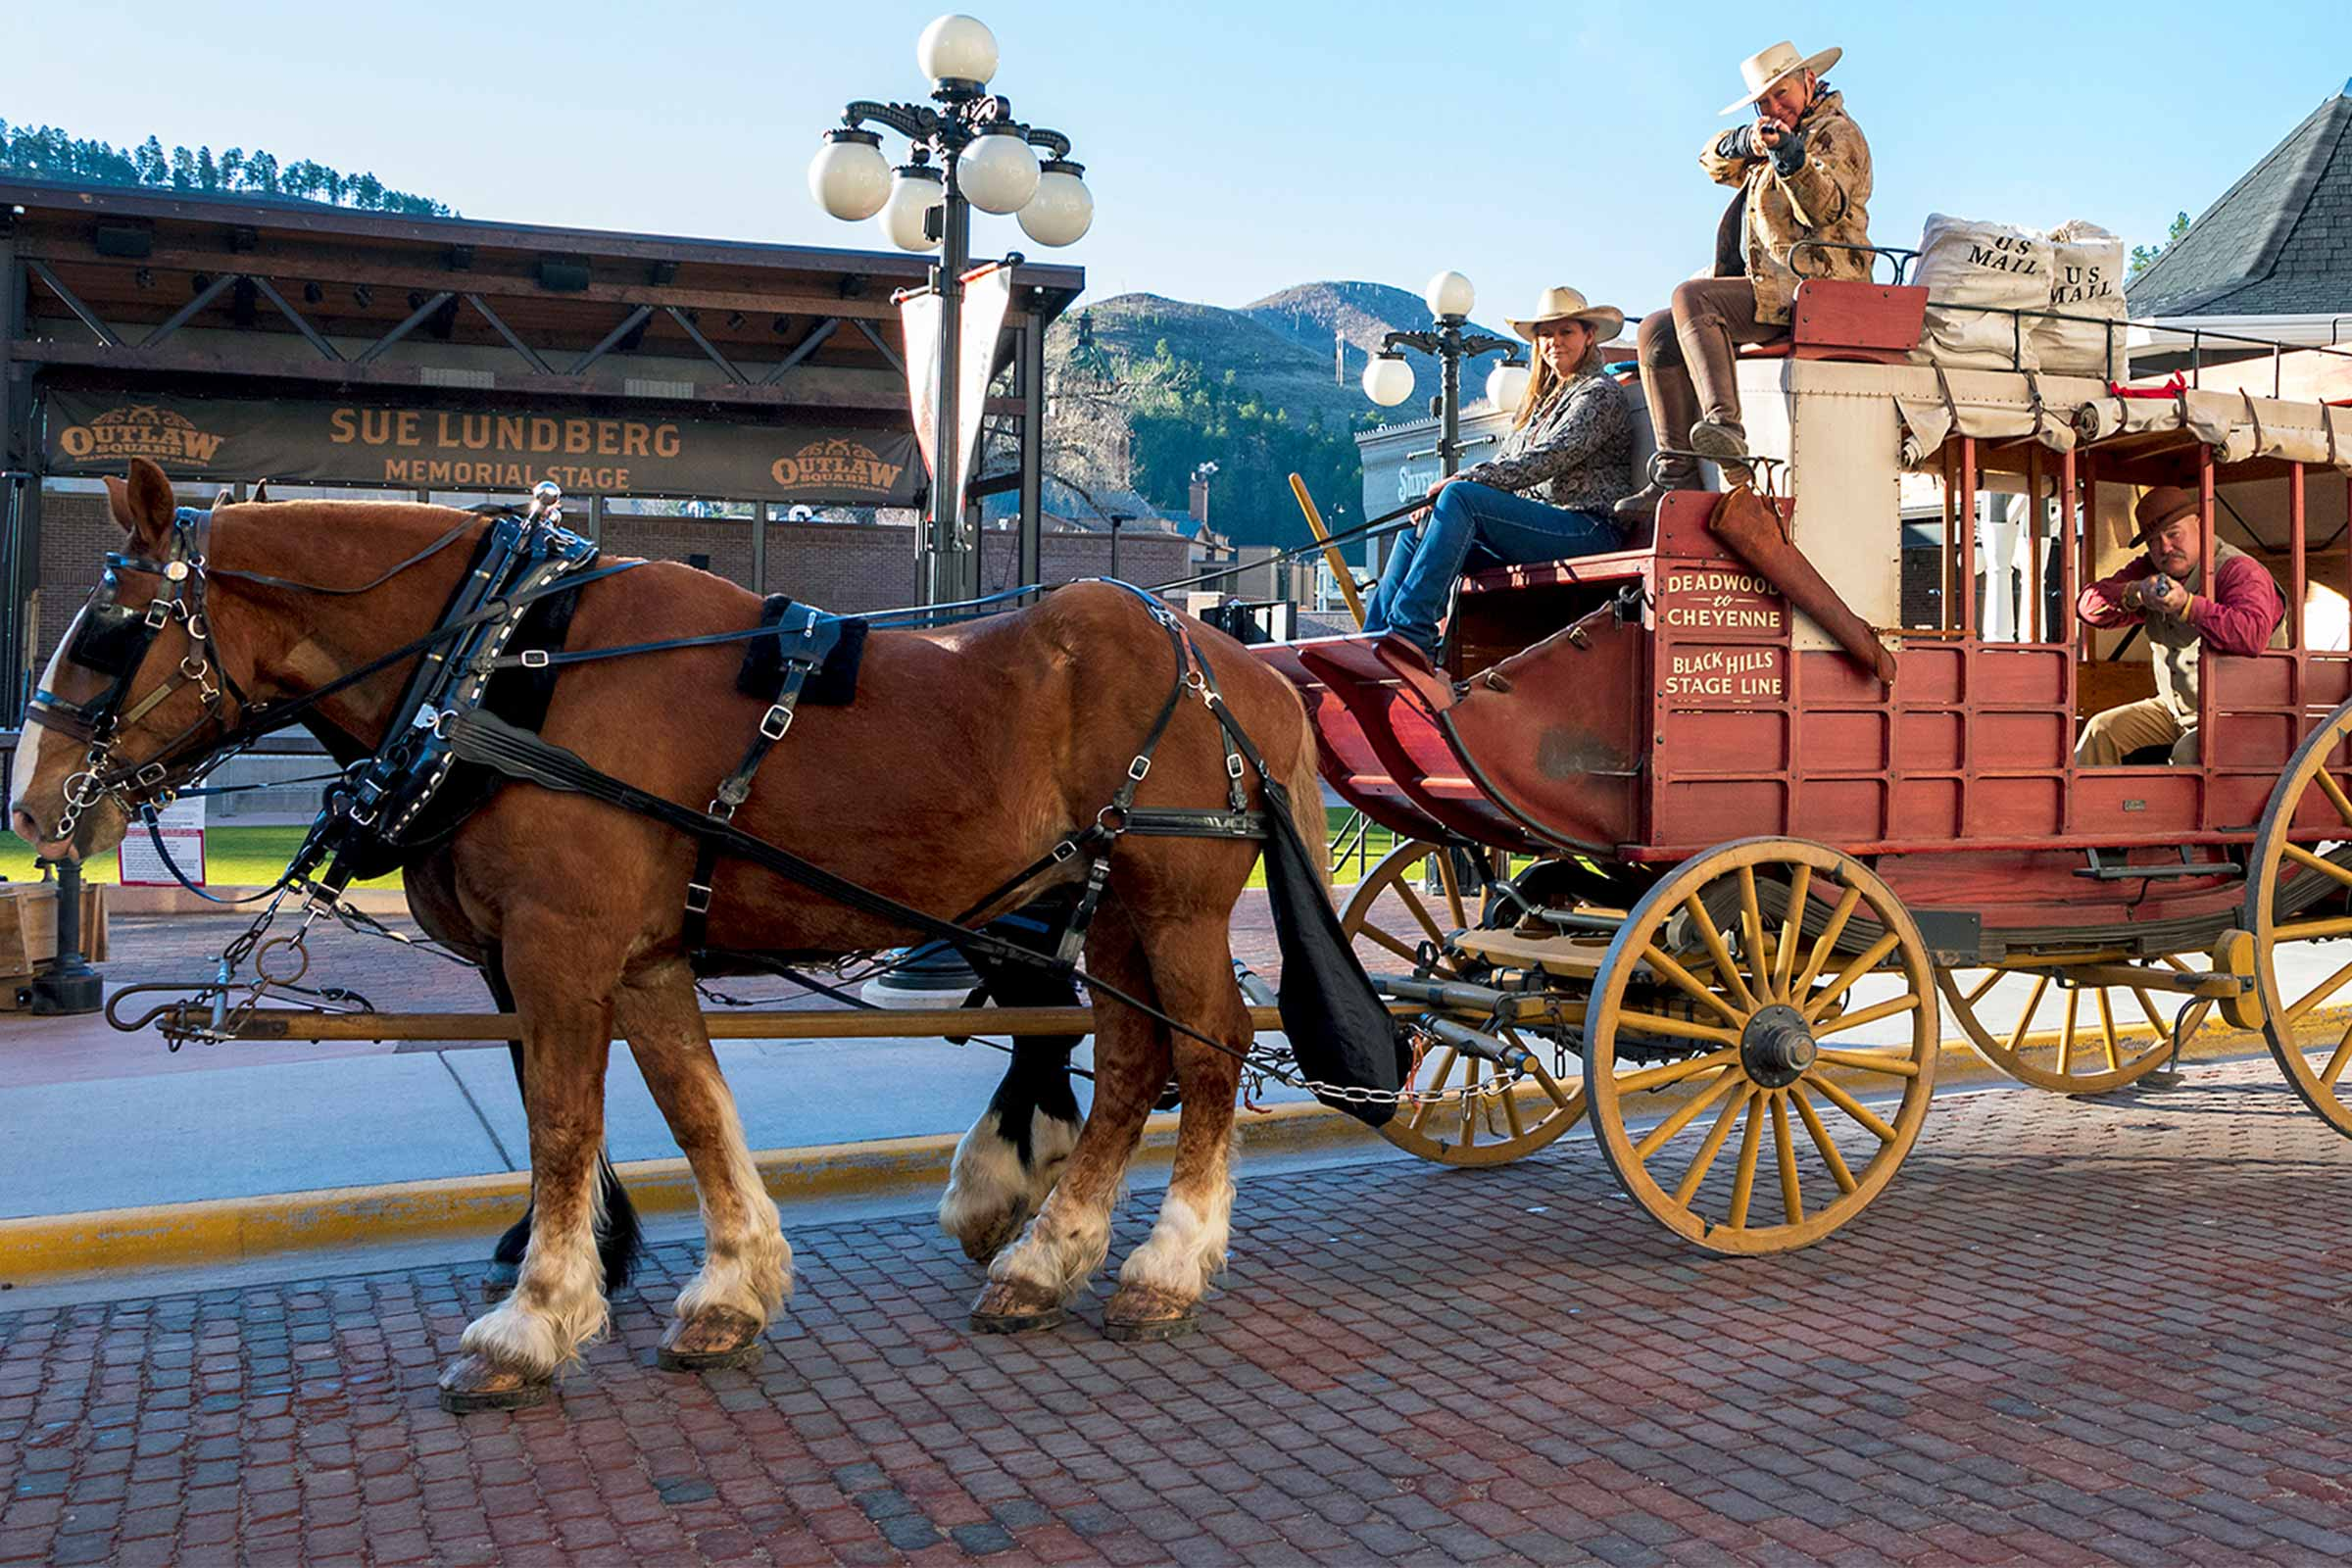 Deadwood Stagecoach with passengers pulled by horses